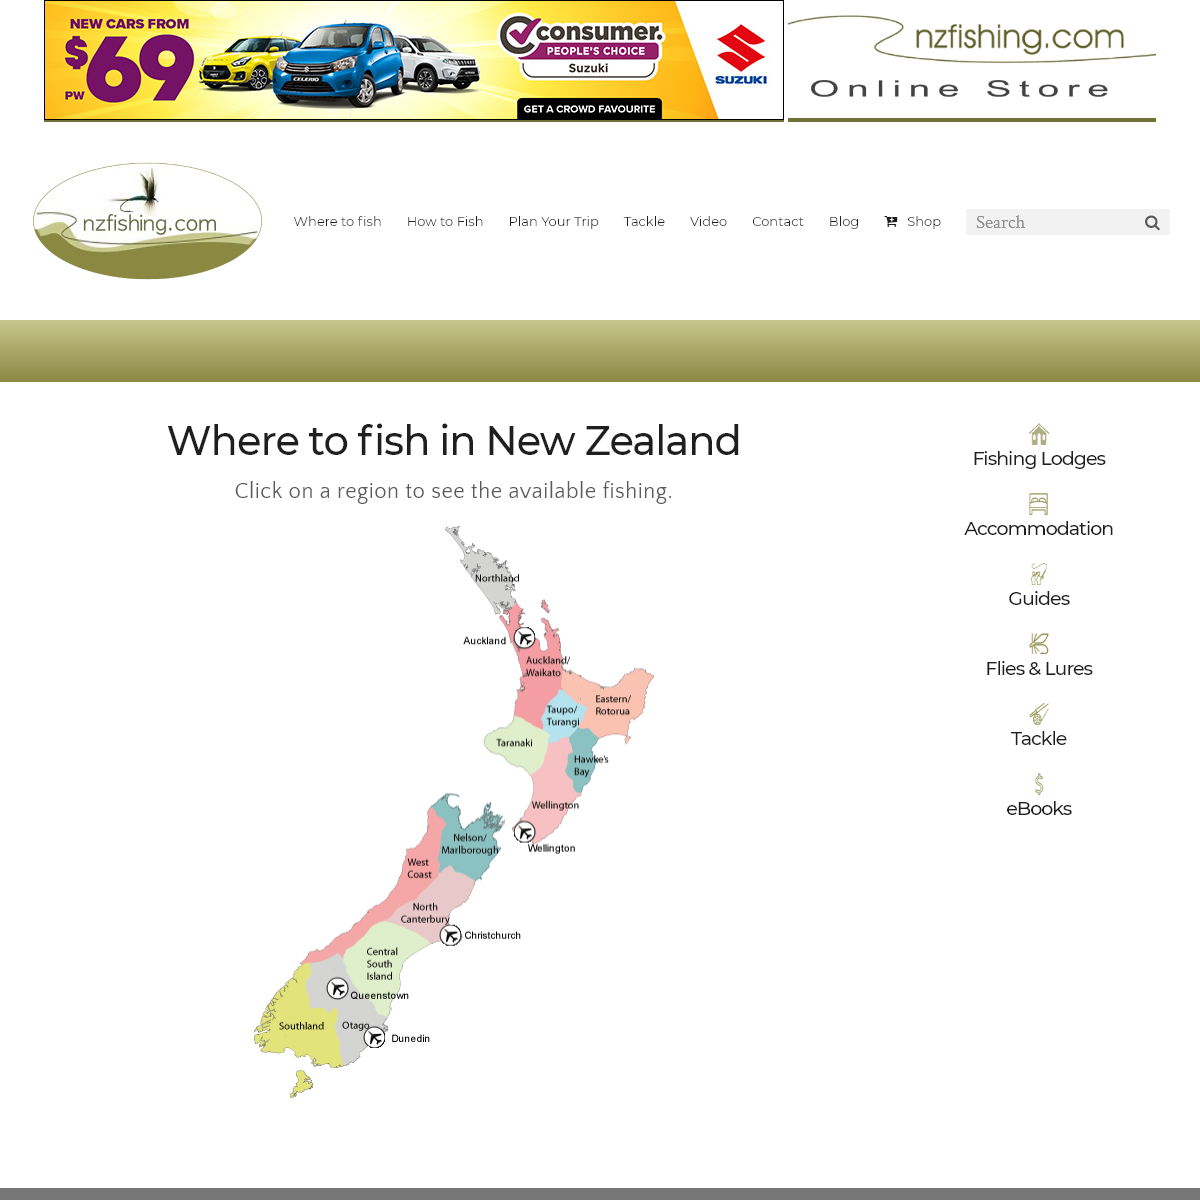 NZ Fishing - Independent guide to fishing in New Zealand